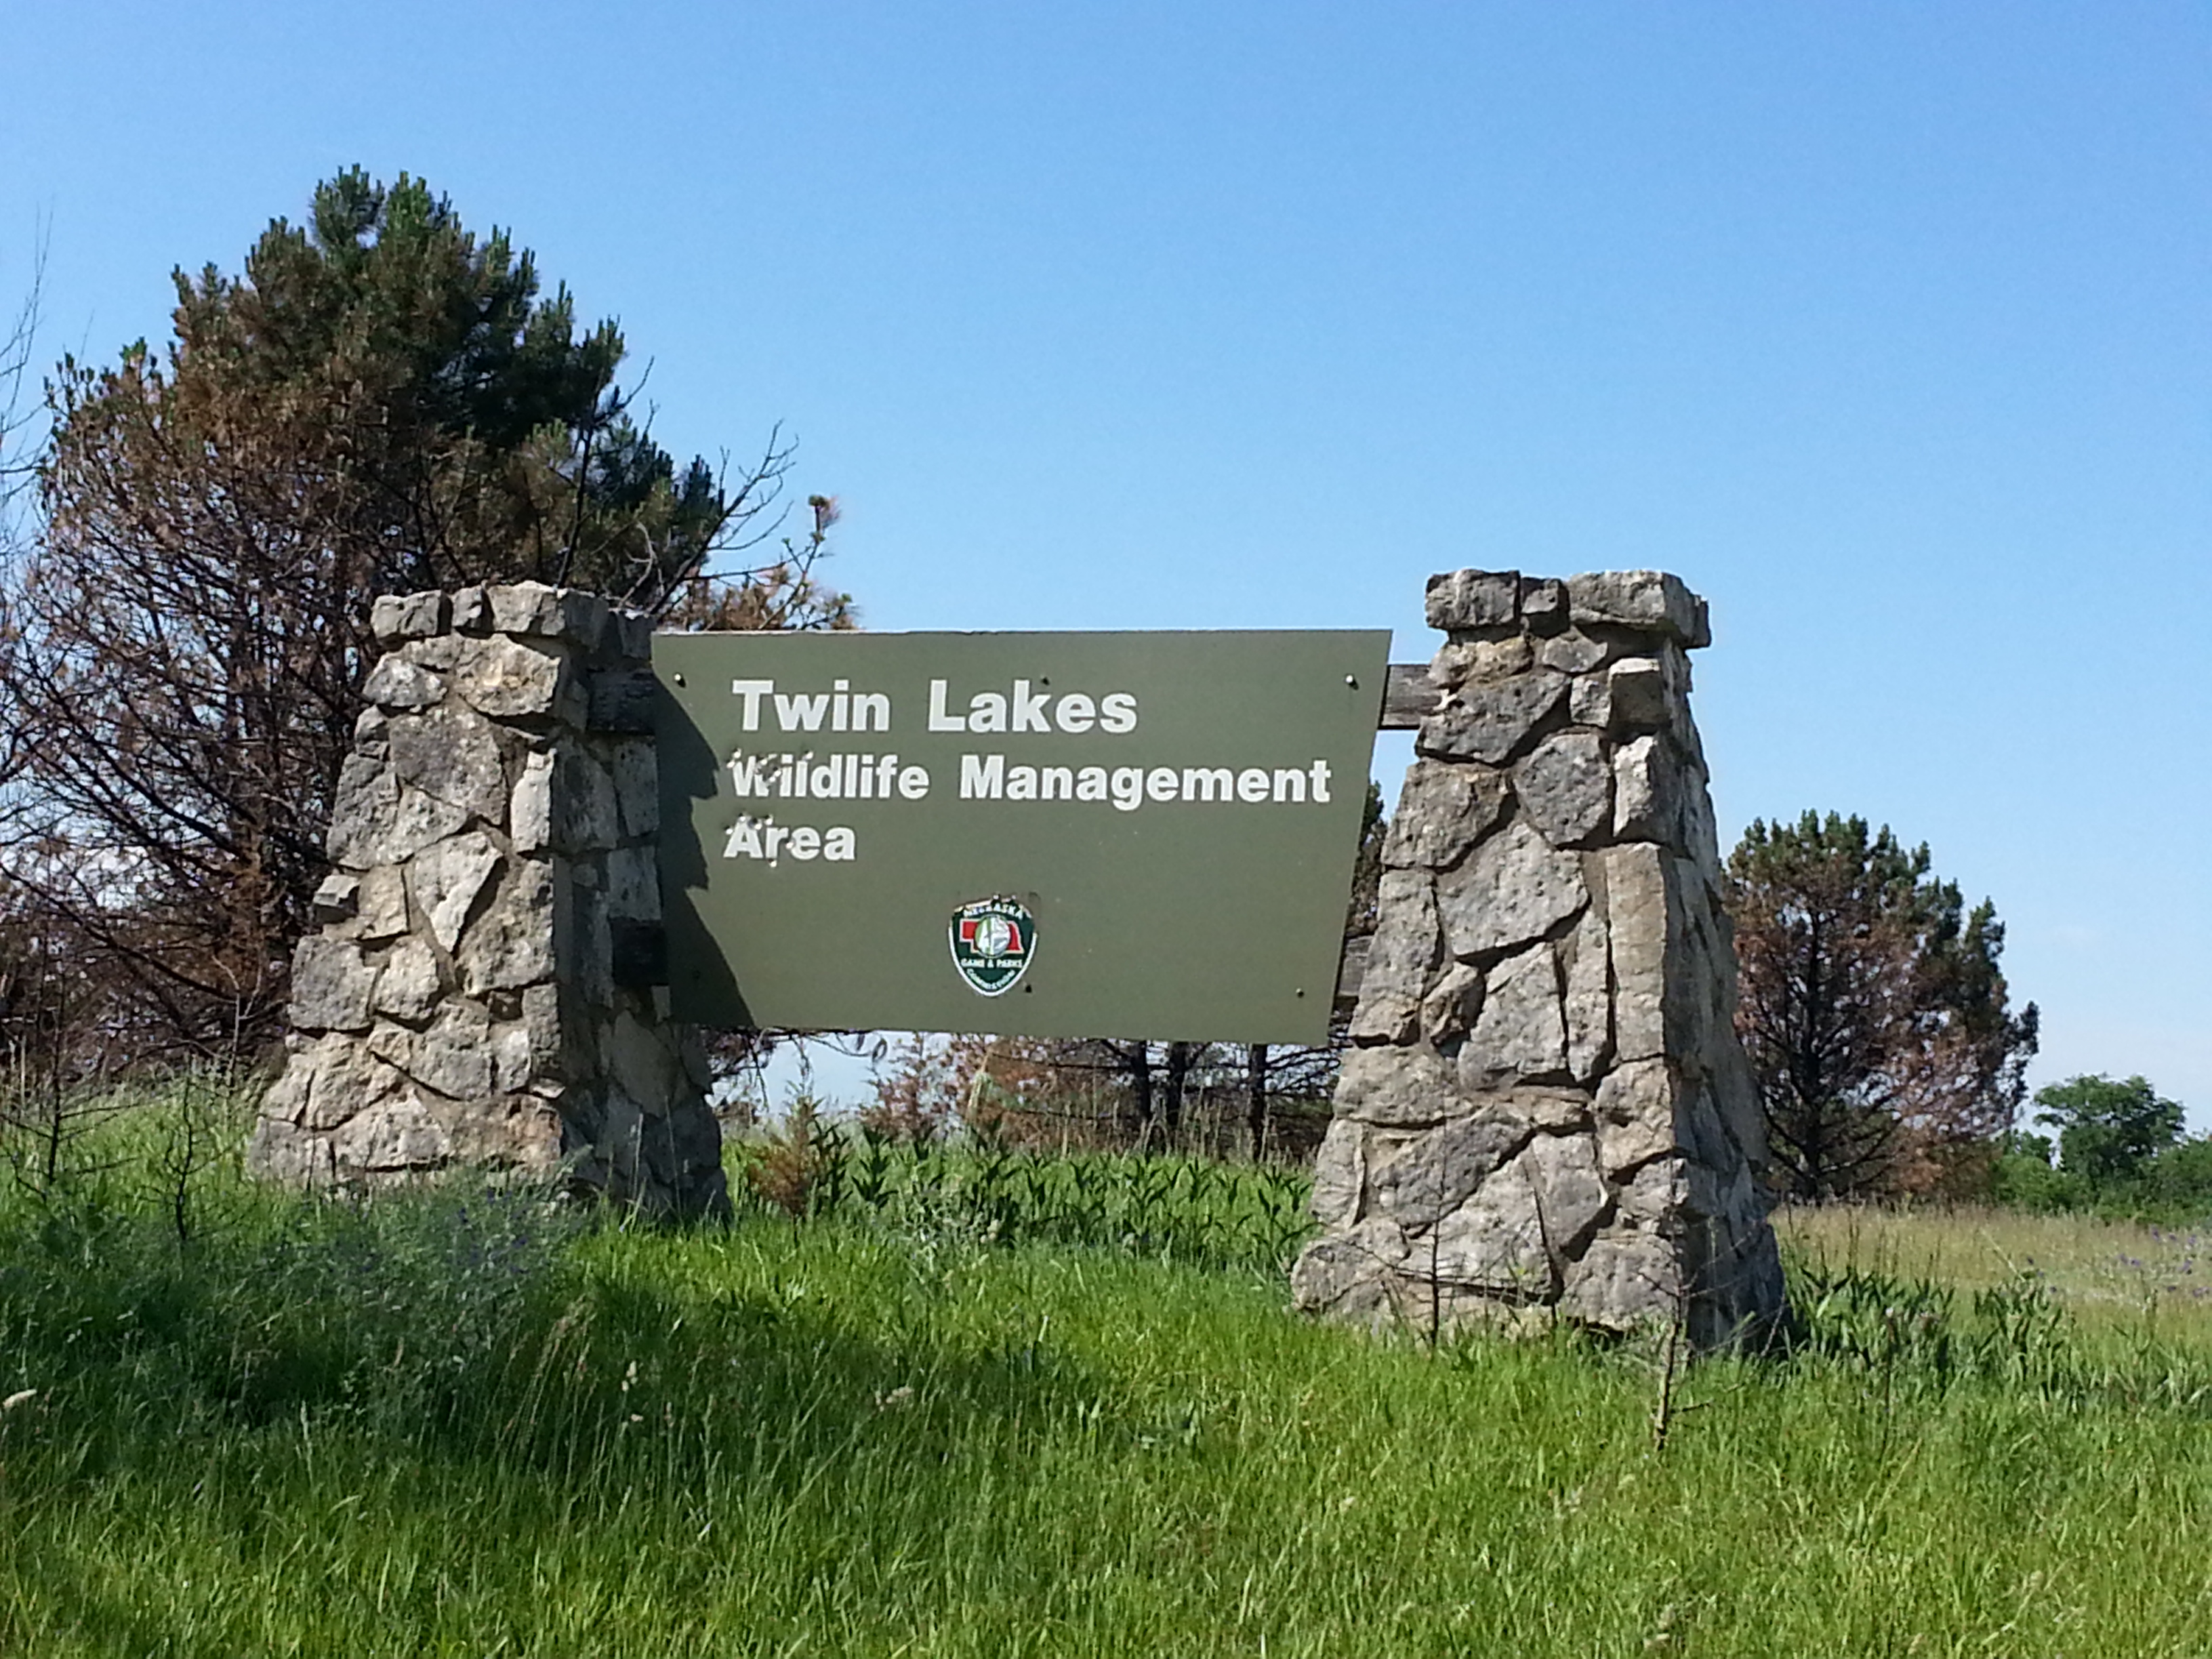 Nebraska - Twin Lakes Wildlife Management Area